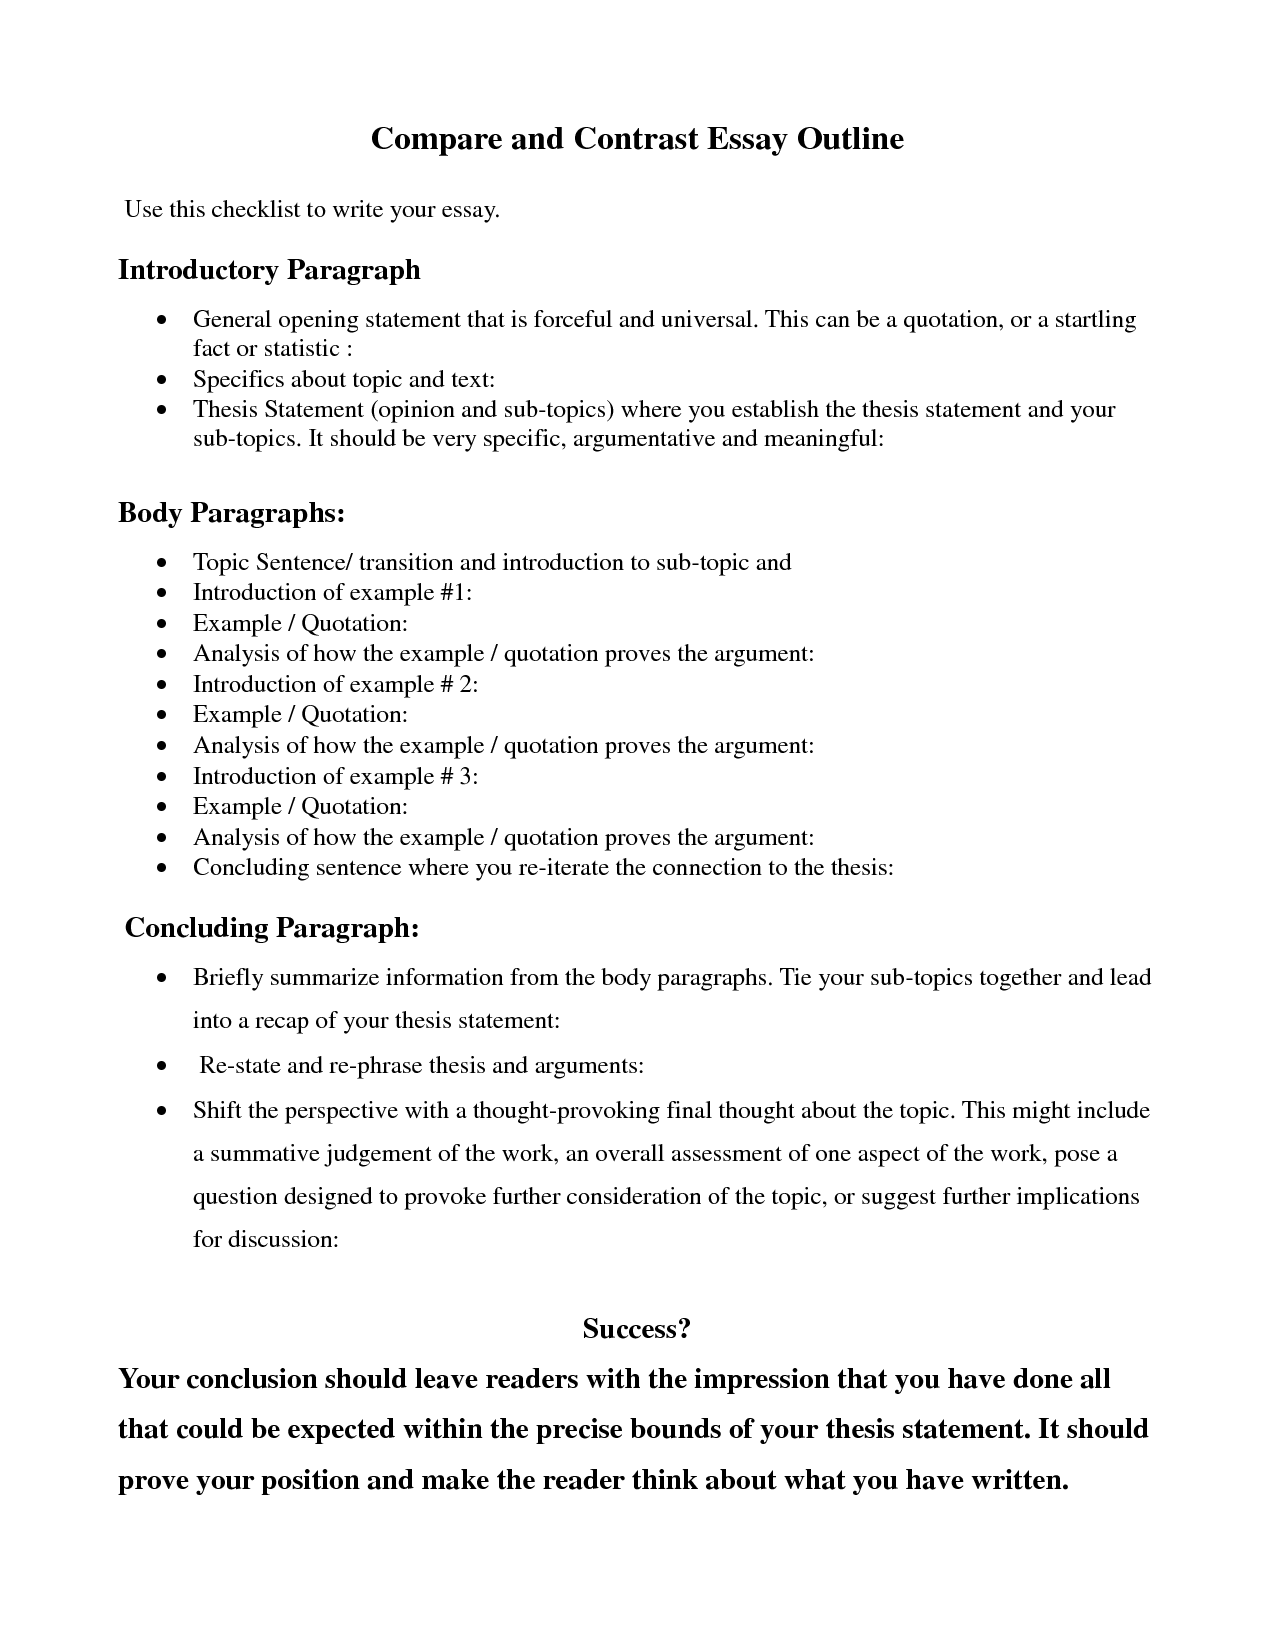 001 Compare And Contrast Essay Example Frightening Prompts 5th Grade Rubric College Ideas 12th Full